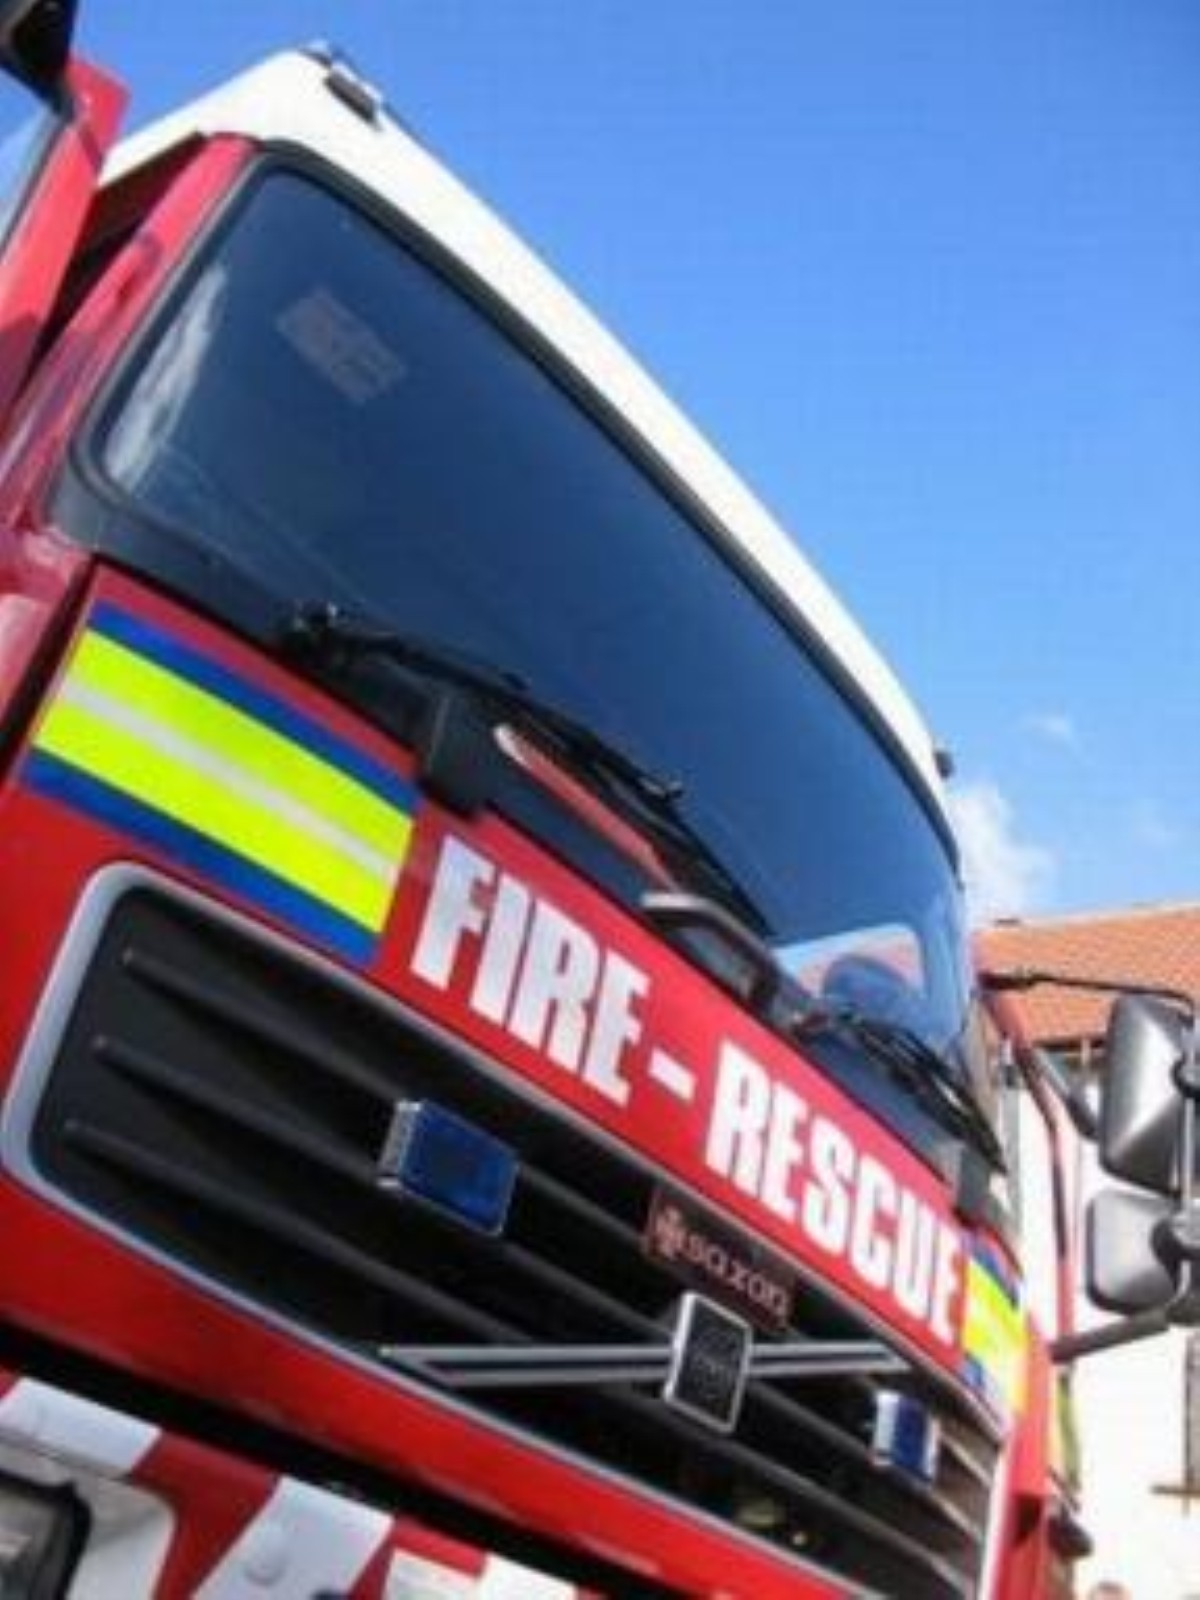 300 tonnes of hay destroyed in barn fire at Orchard Portman